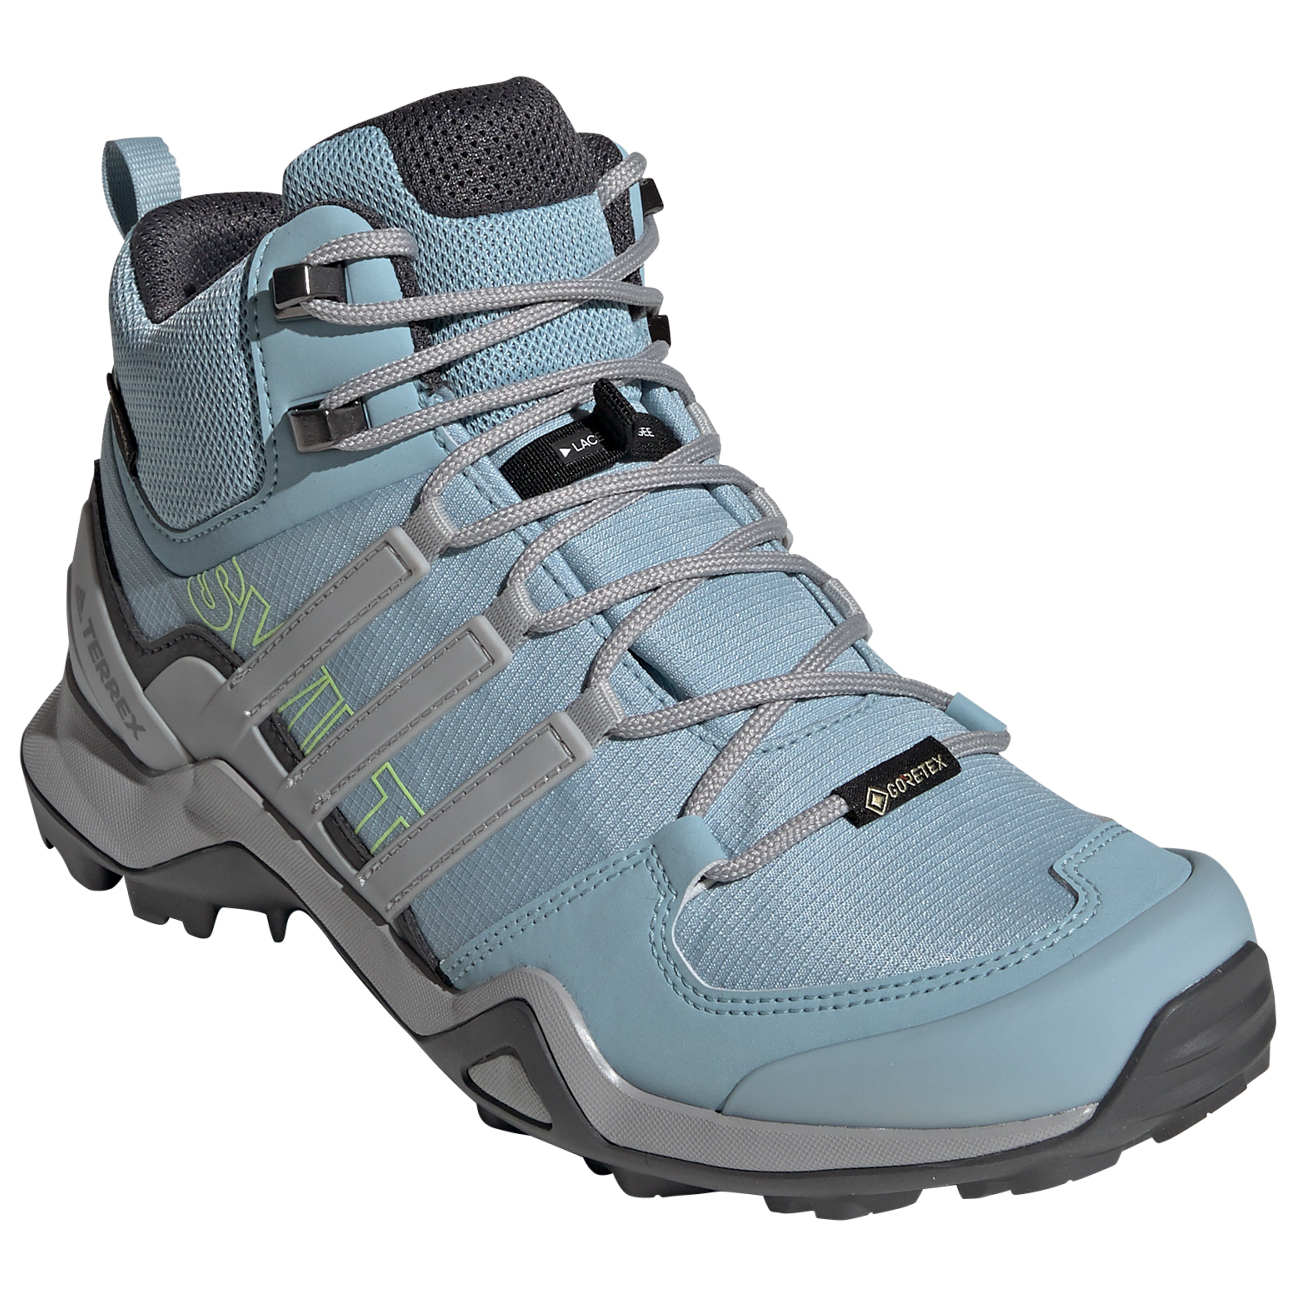 f751101d84793 adidas - Women s Terrex Swift R2 Mid GTX - Walking boots